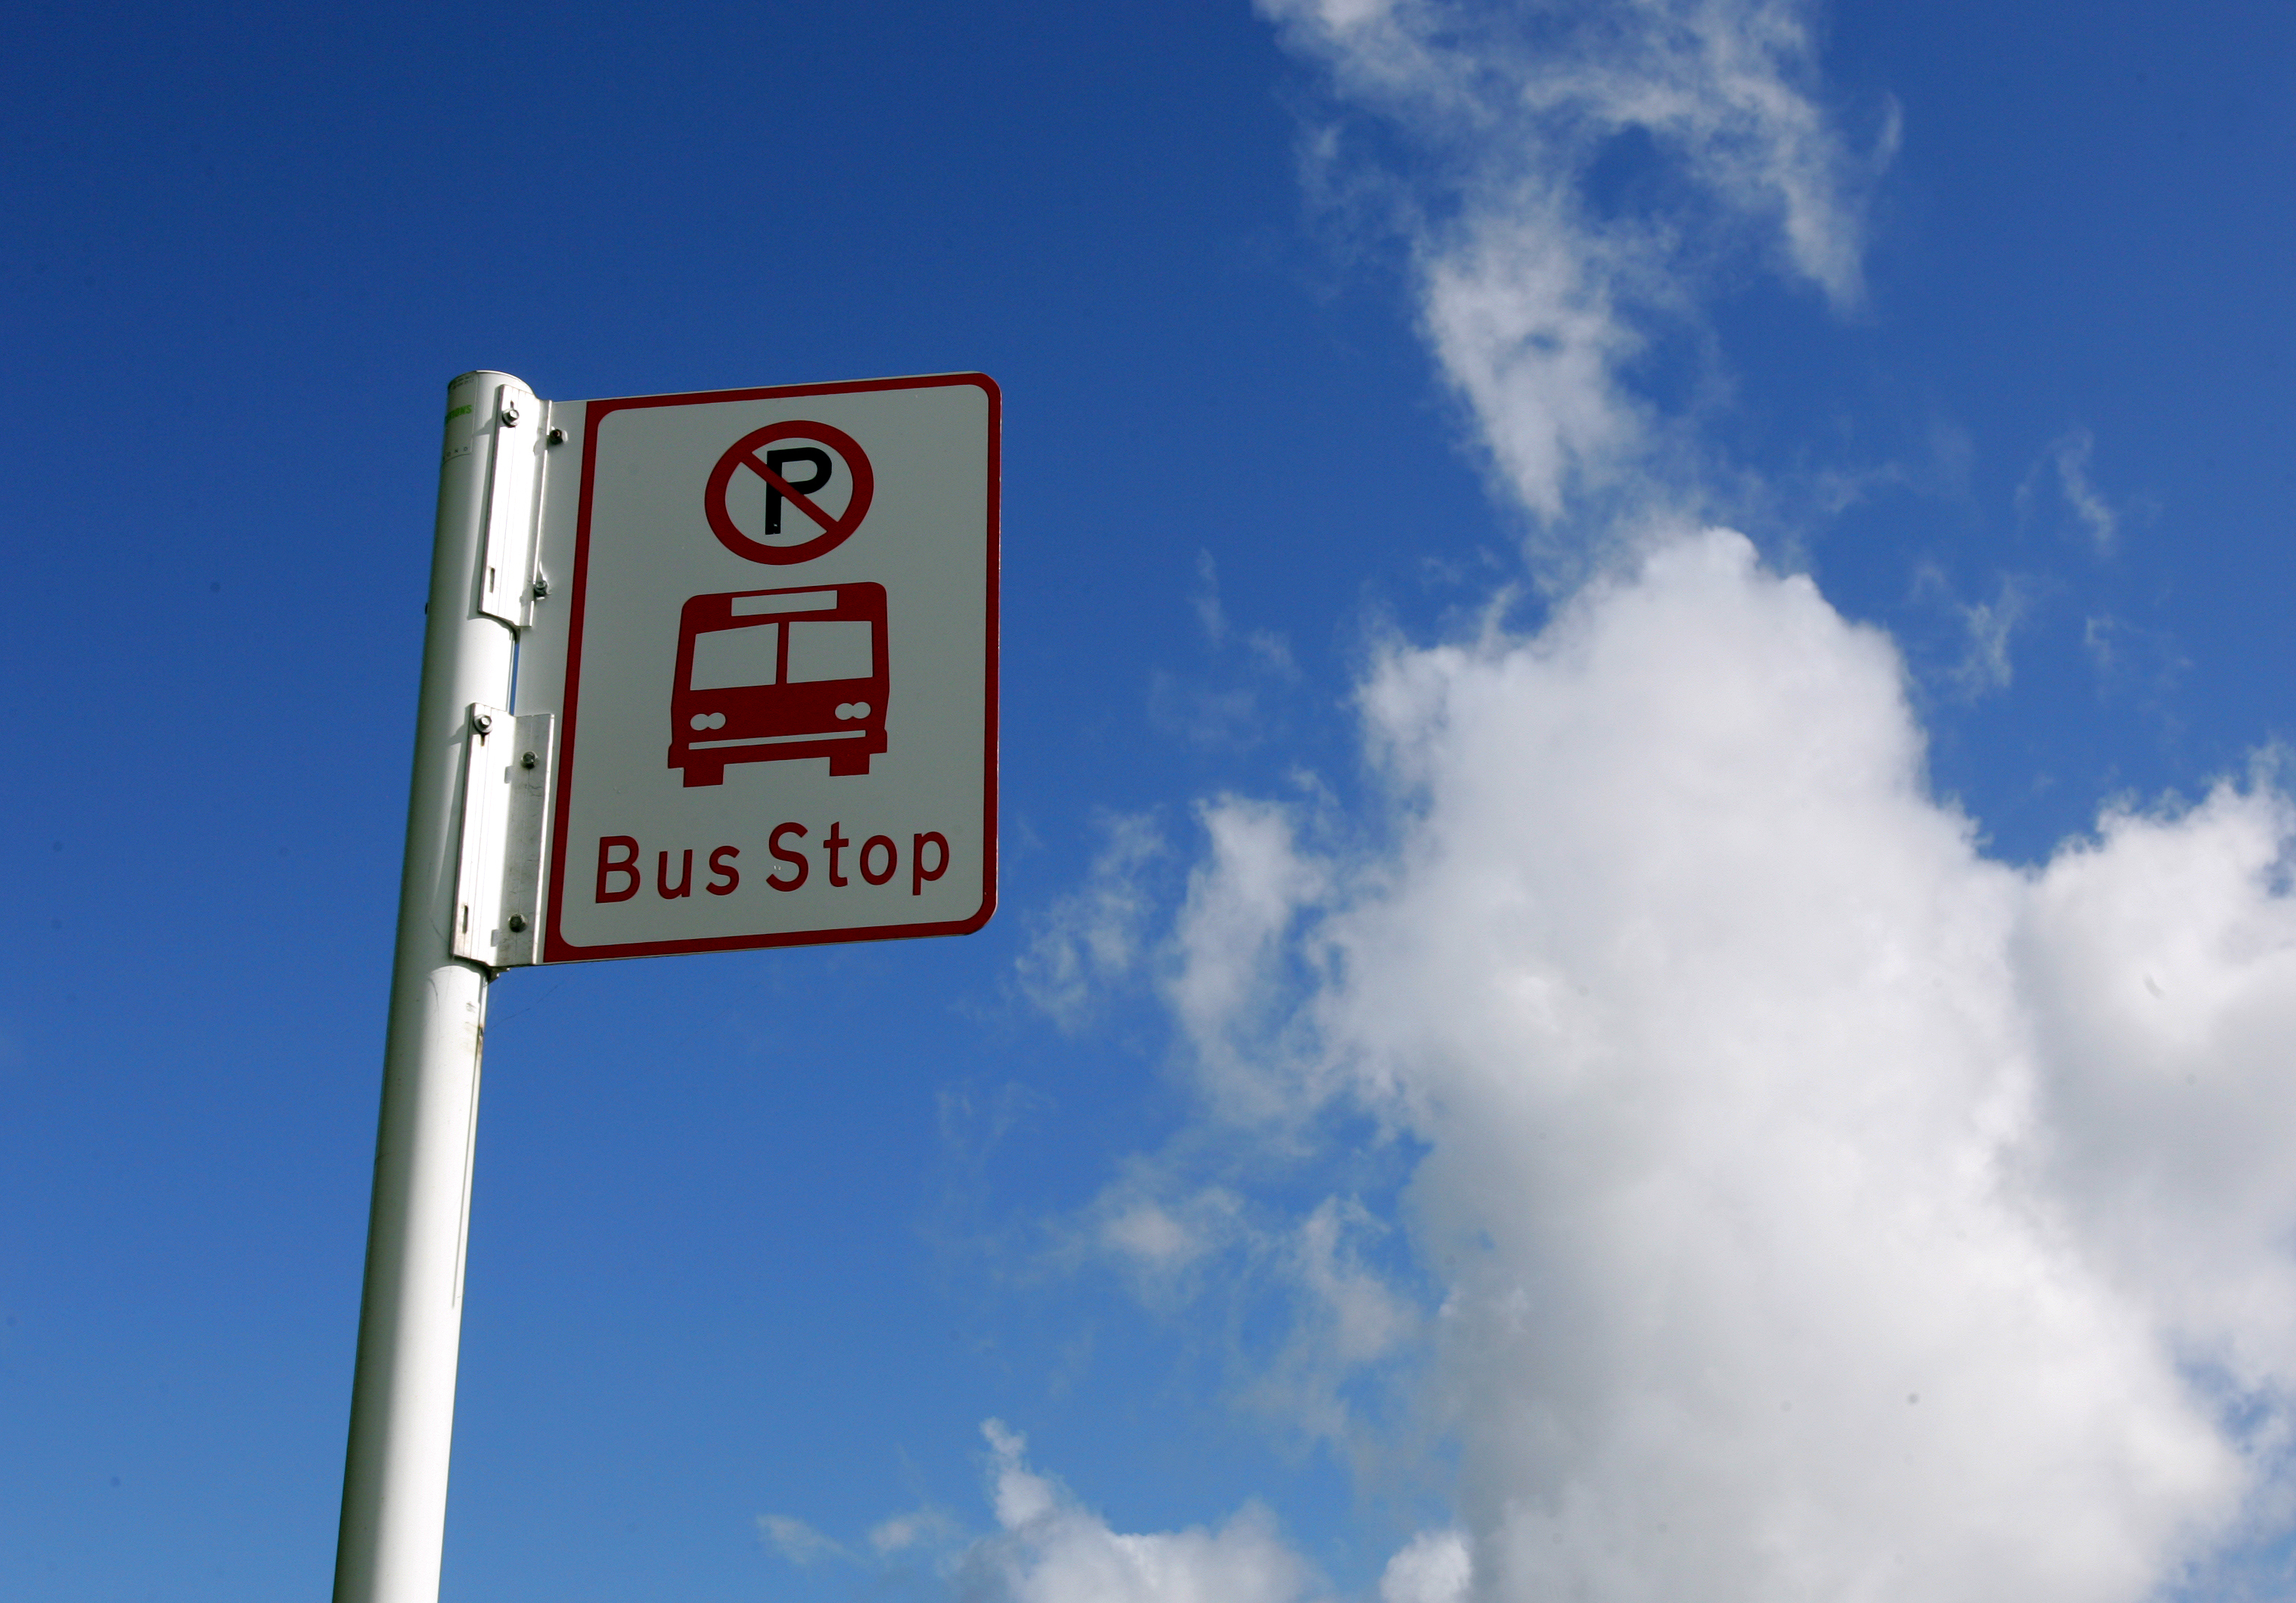 Dannevirke: Competition may hurt bus service - NZ Herald